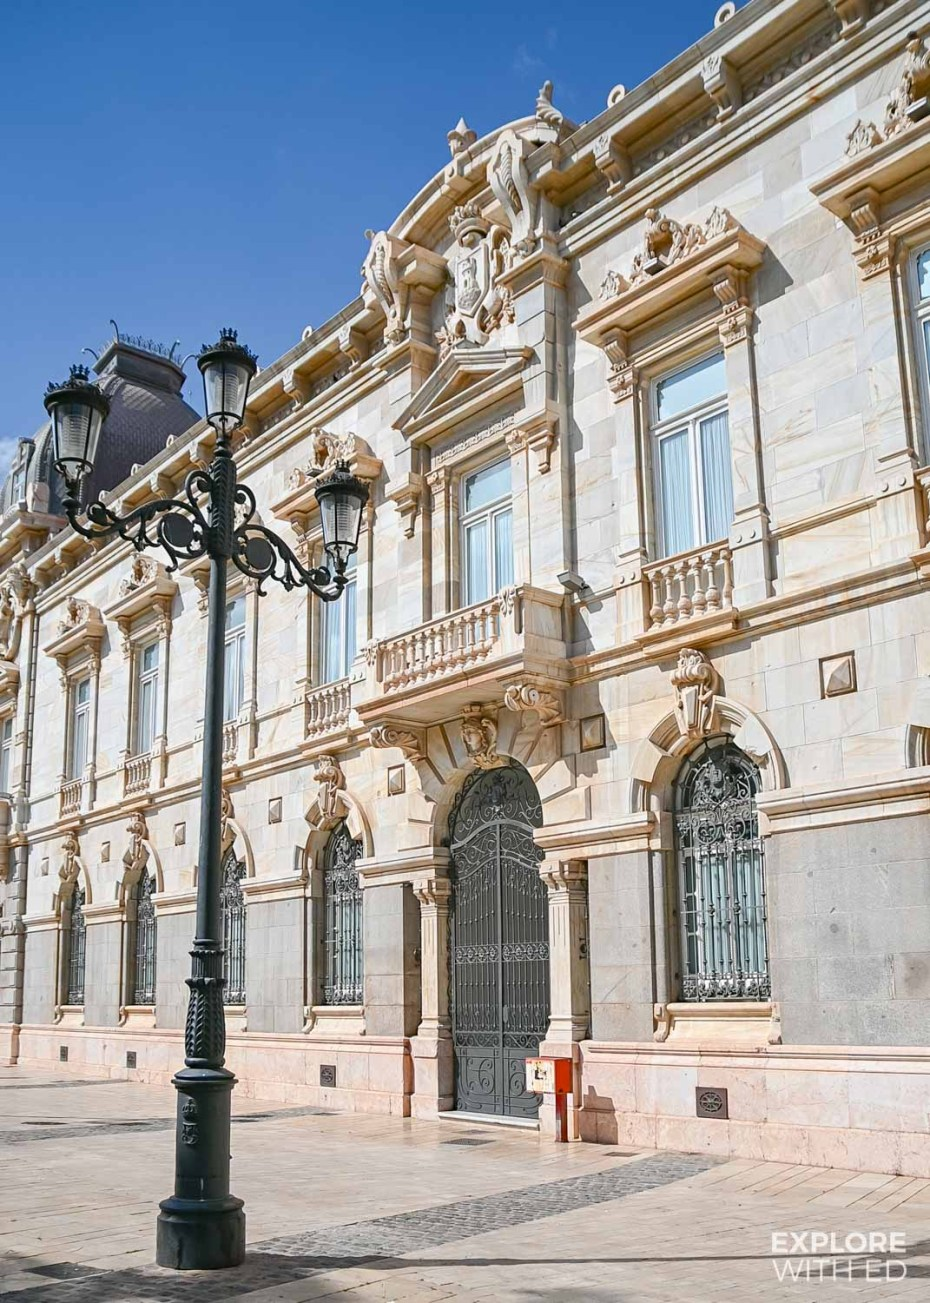 Pretty architecture and lampposts in Cartagena, Spain